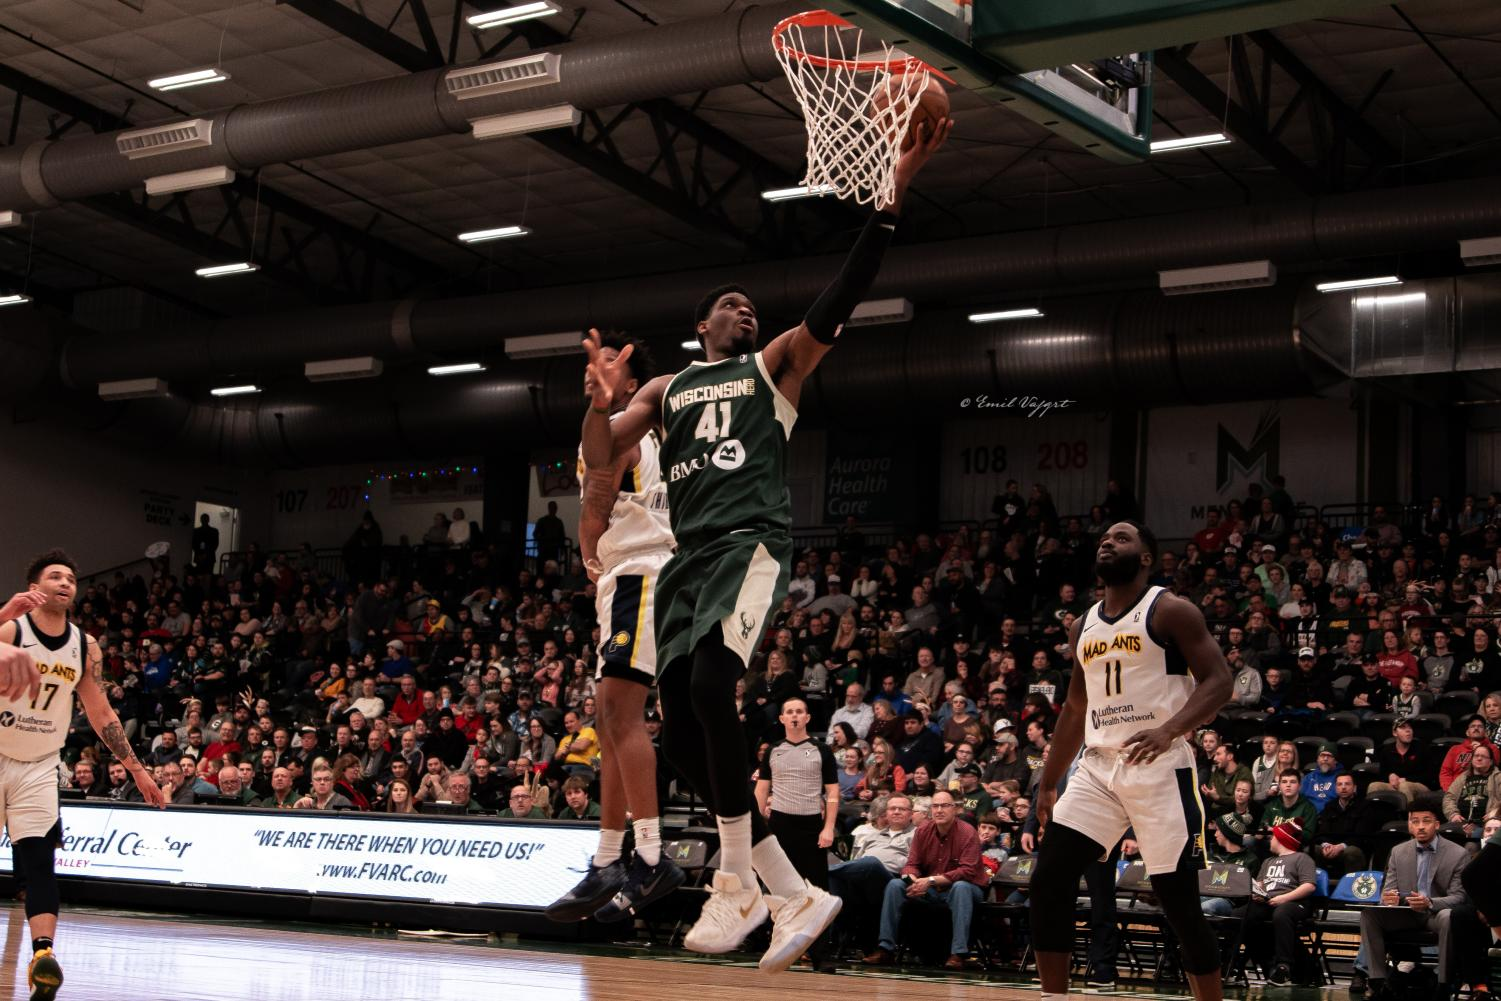 Herd center Shevon Thompson goes up for a lay-up as he finishes with a career-high 32 points and 18 rebounds.